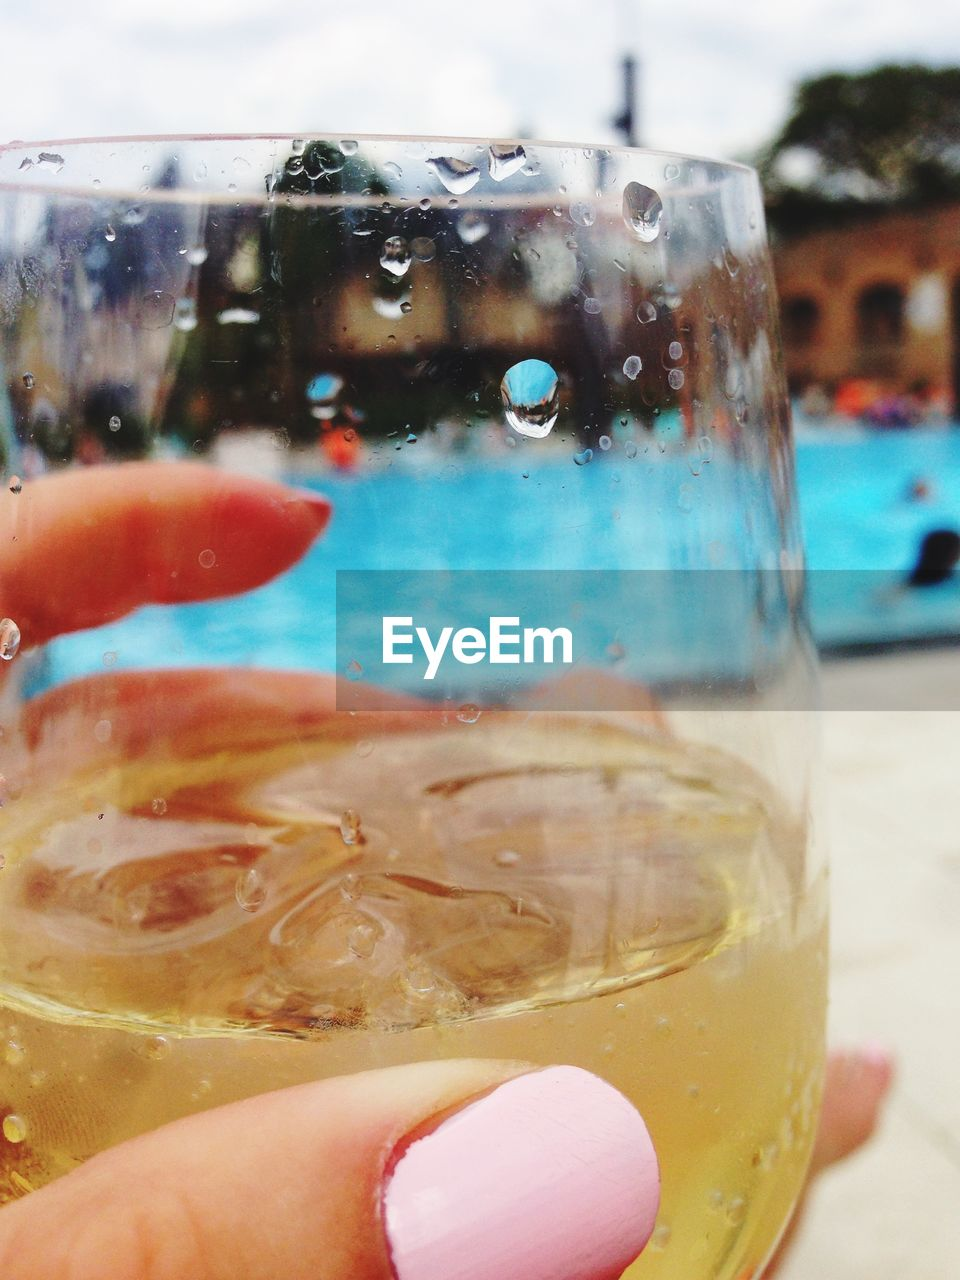 Cropped image of woman hand holding wineglass by swimming